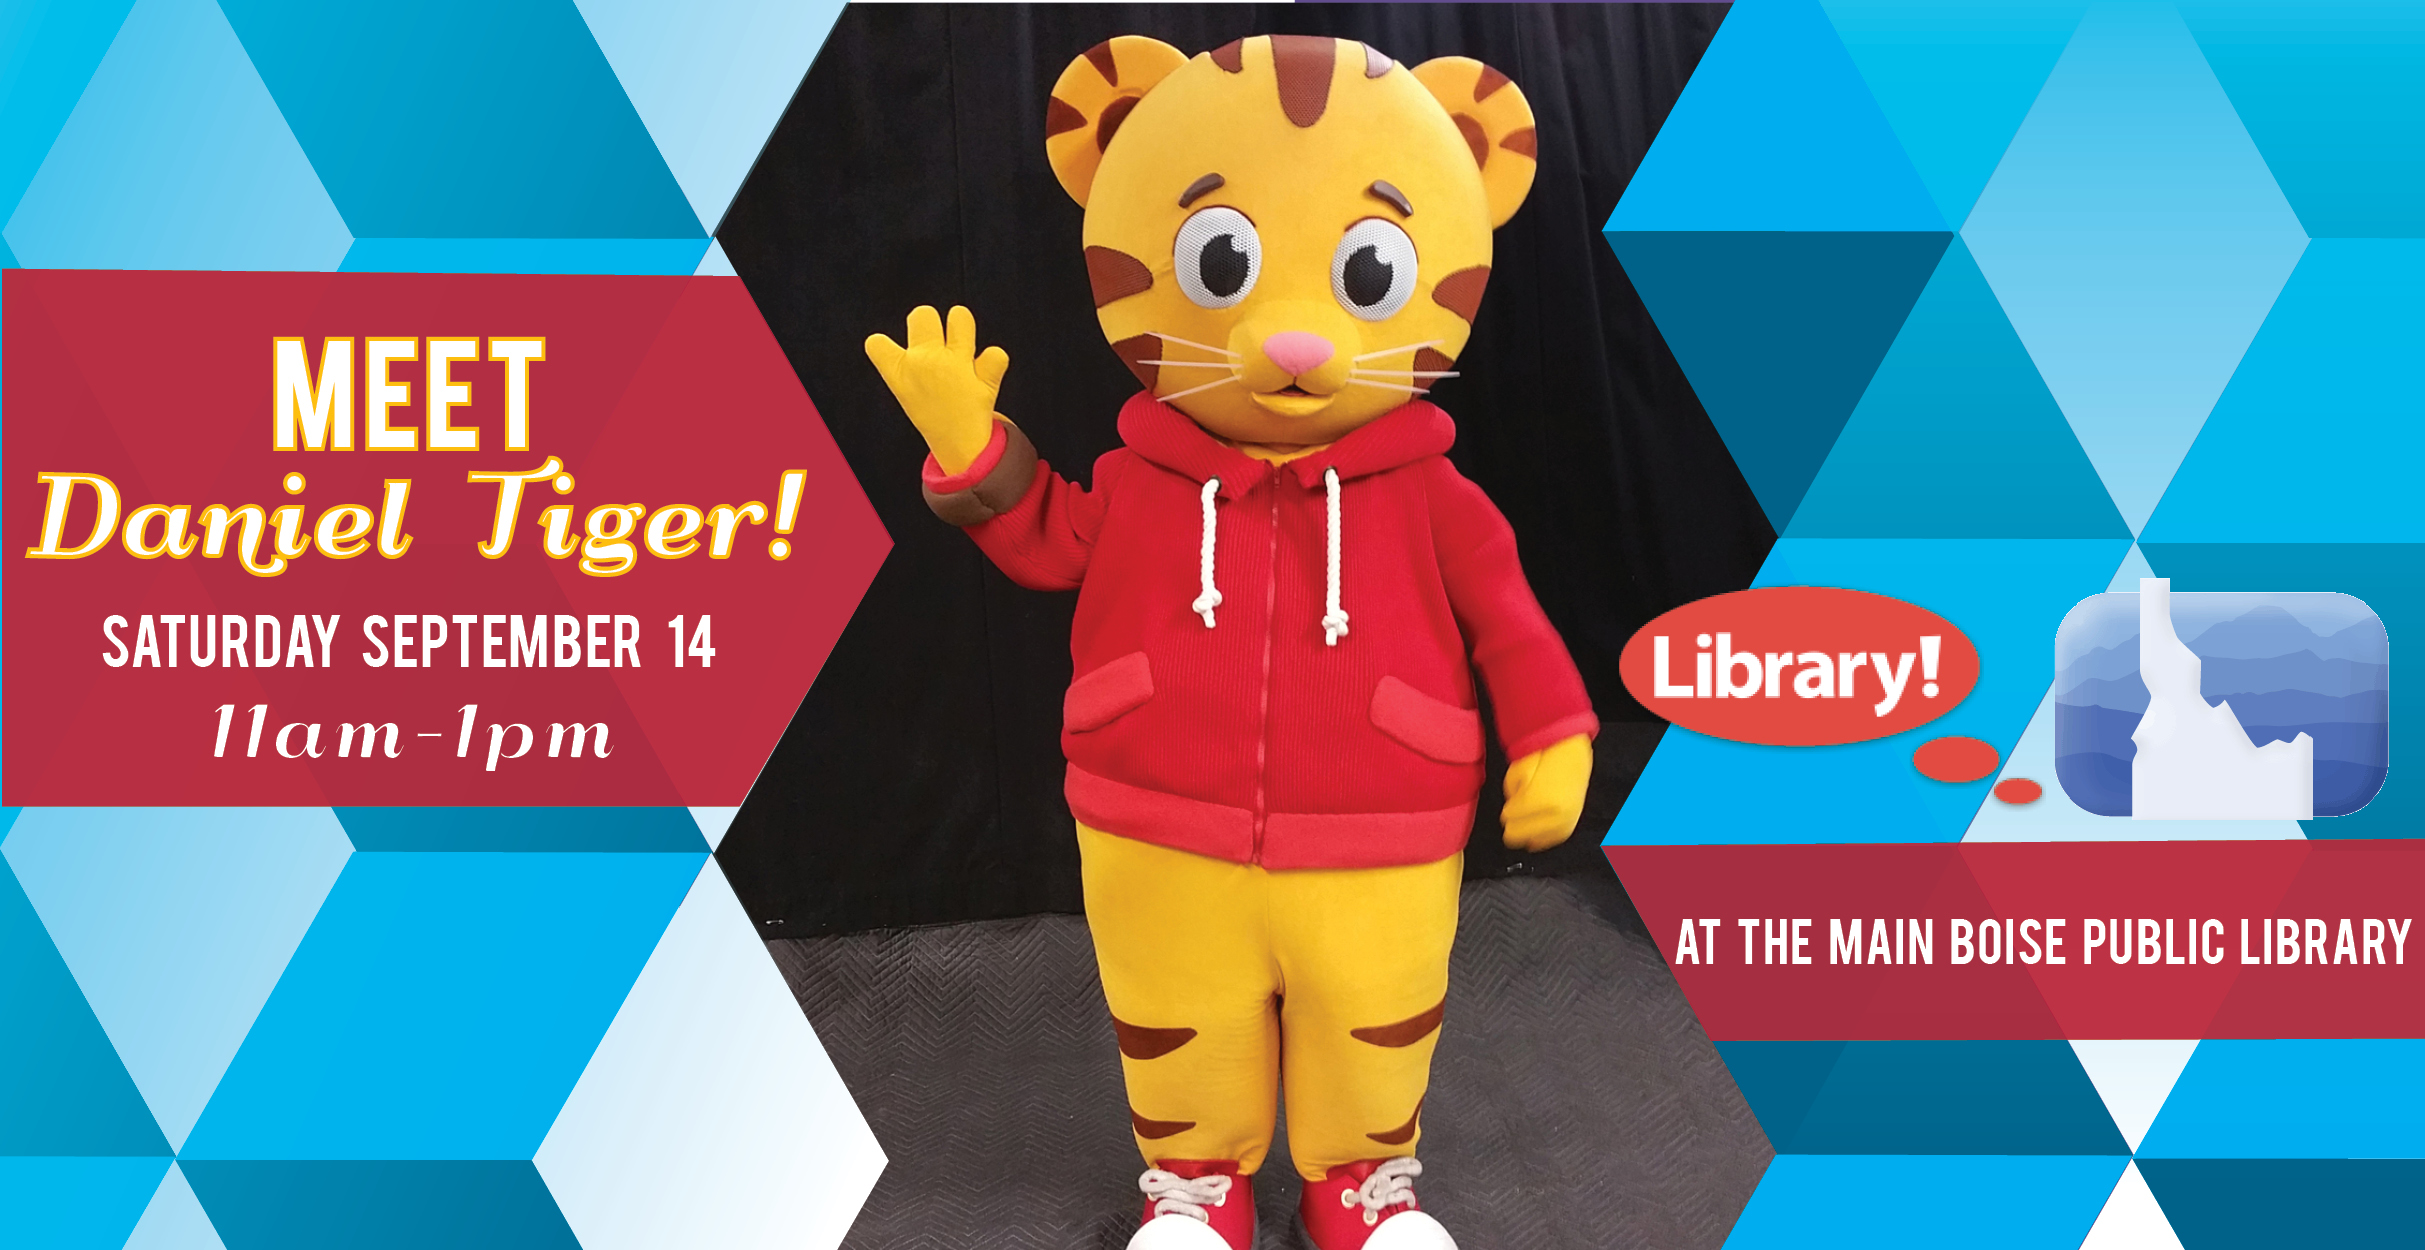 Daniel Tiger at the Library! | The Rediscovered Bookshop